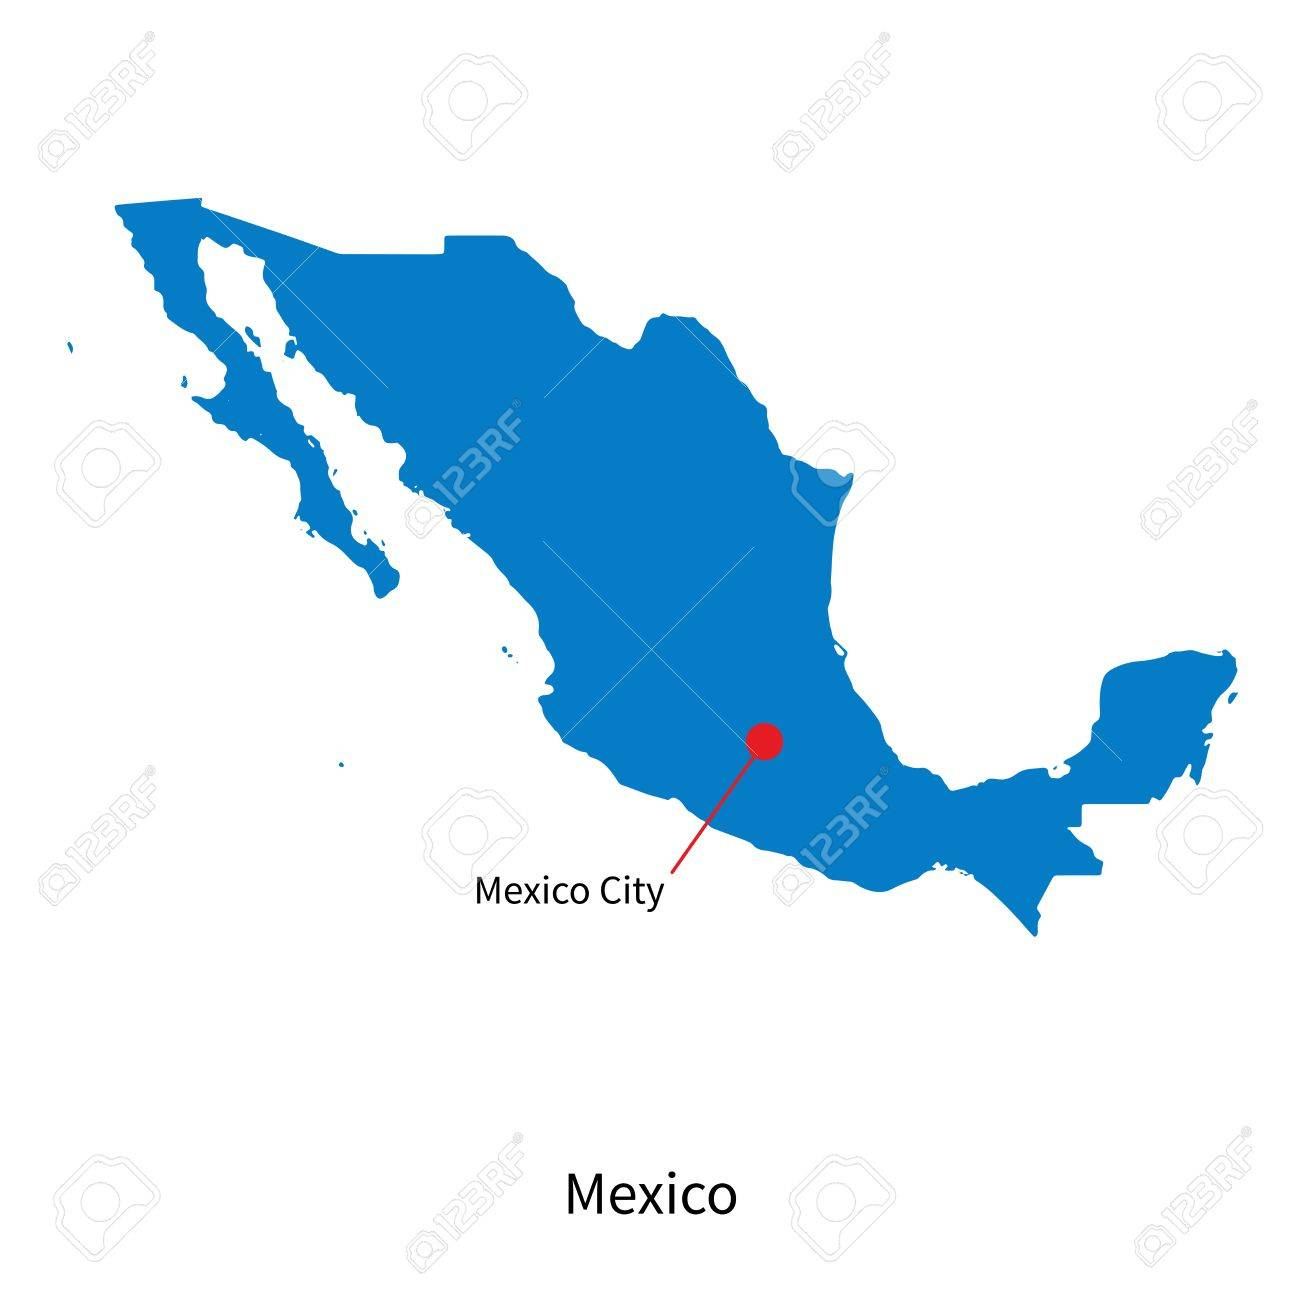 Detailed Map Of Mexico And Capital City Mexico Royalty Free – Mexico City on Map